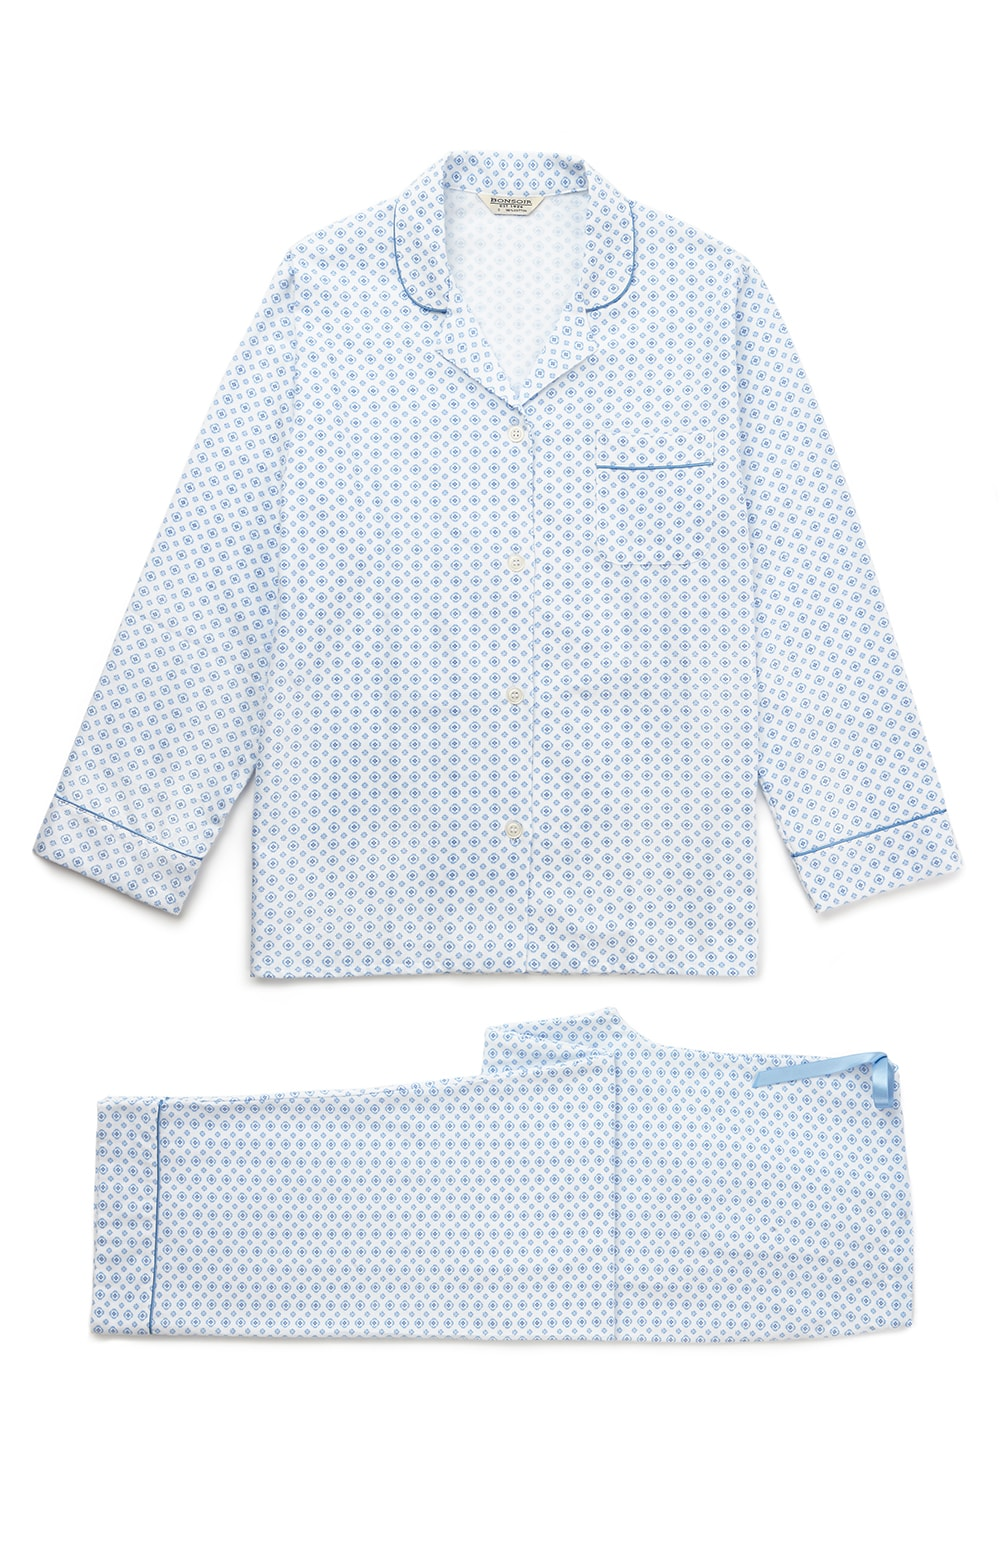 Brushed Pastel Pyjamas (blps) - Lisbon Blue | Bonsoir of London